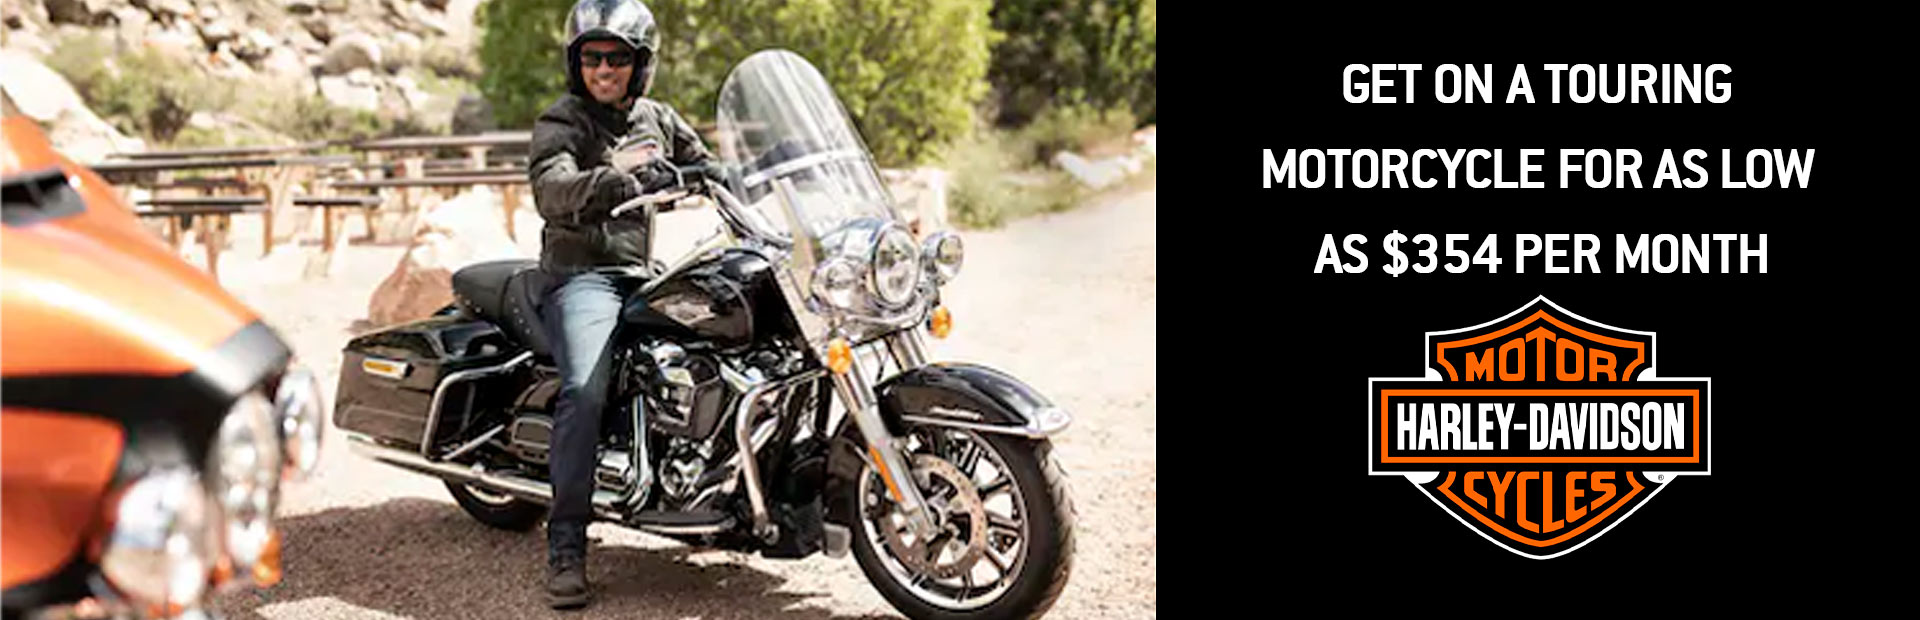 Harley-Davidson®: GET ON A TOURING MOTORCYCLE FOR AS LOW AS $354